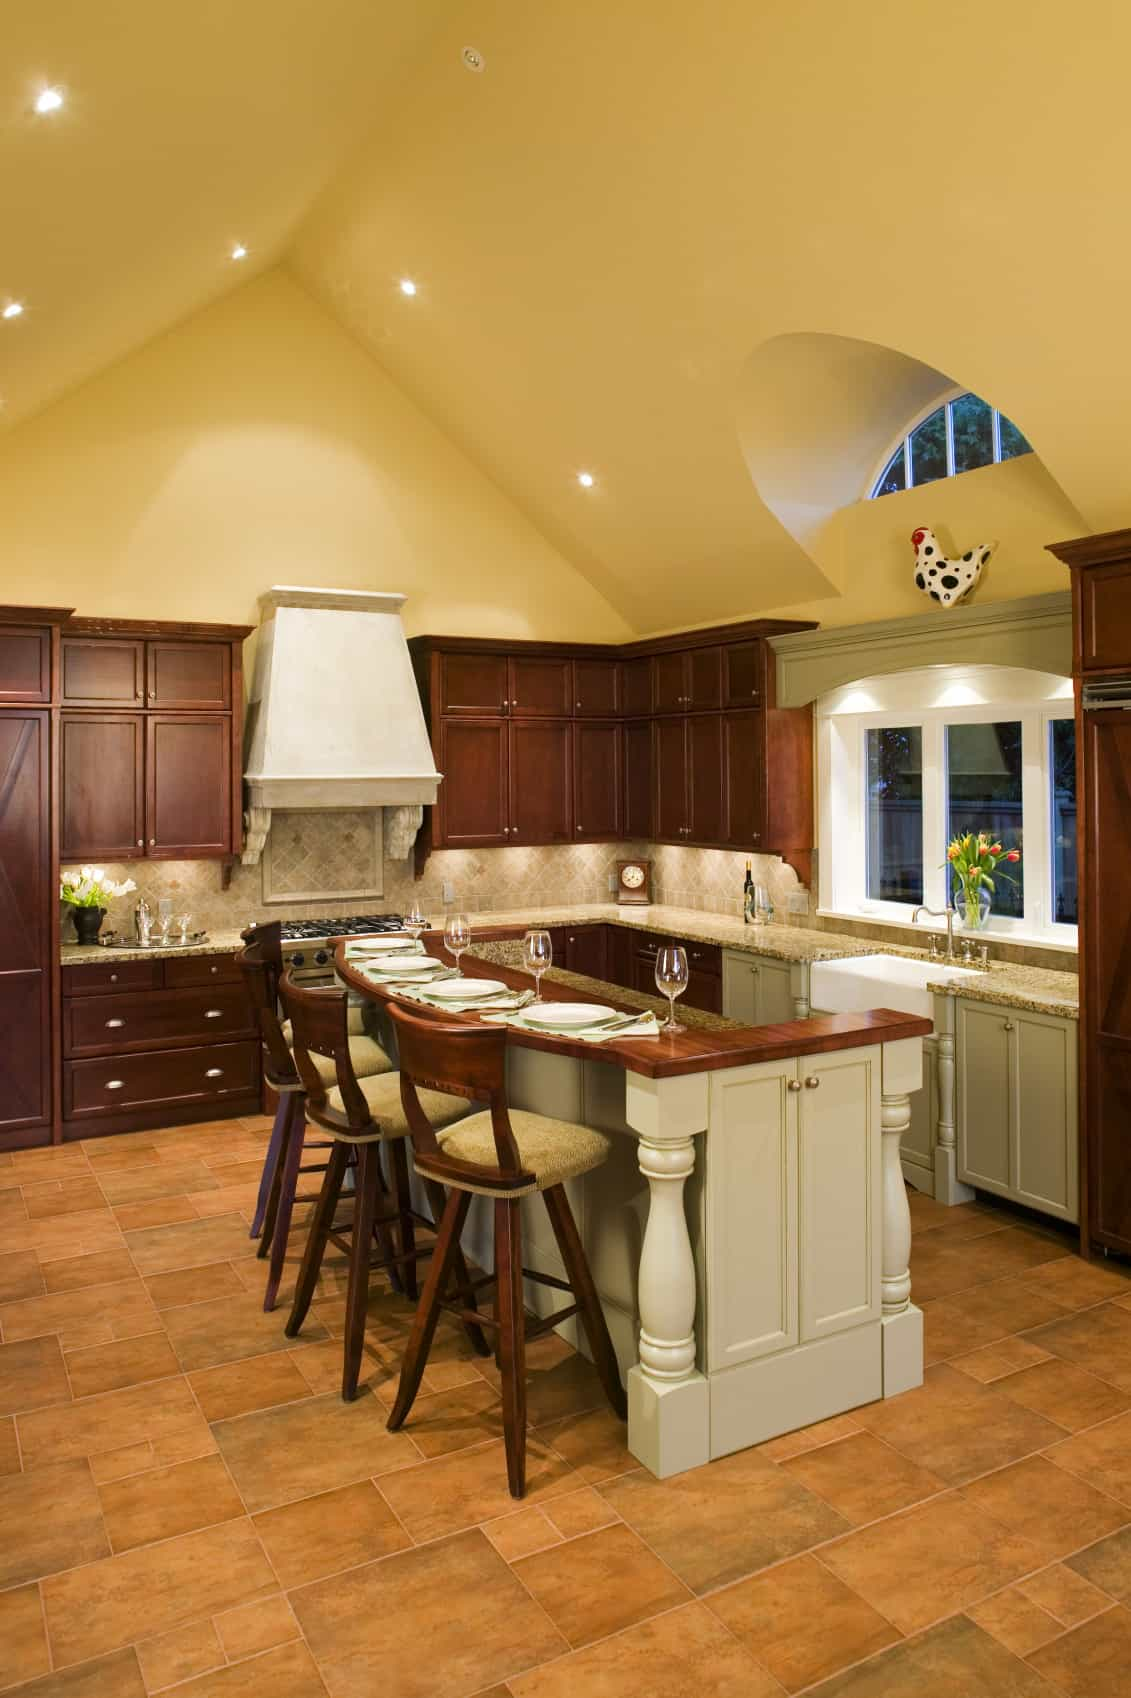 Wooden chairs sit on a two-tier kitchen island topped with rich wood and marble counters in this farmhouse kitchen. It has yellow walls and cathedral ceiling along with tiled flooring.